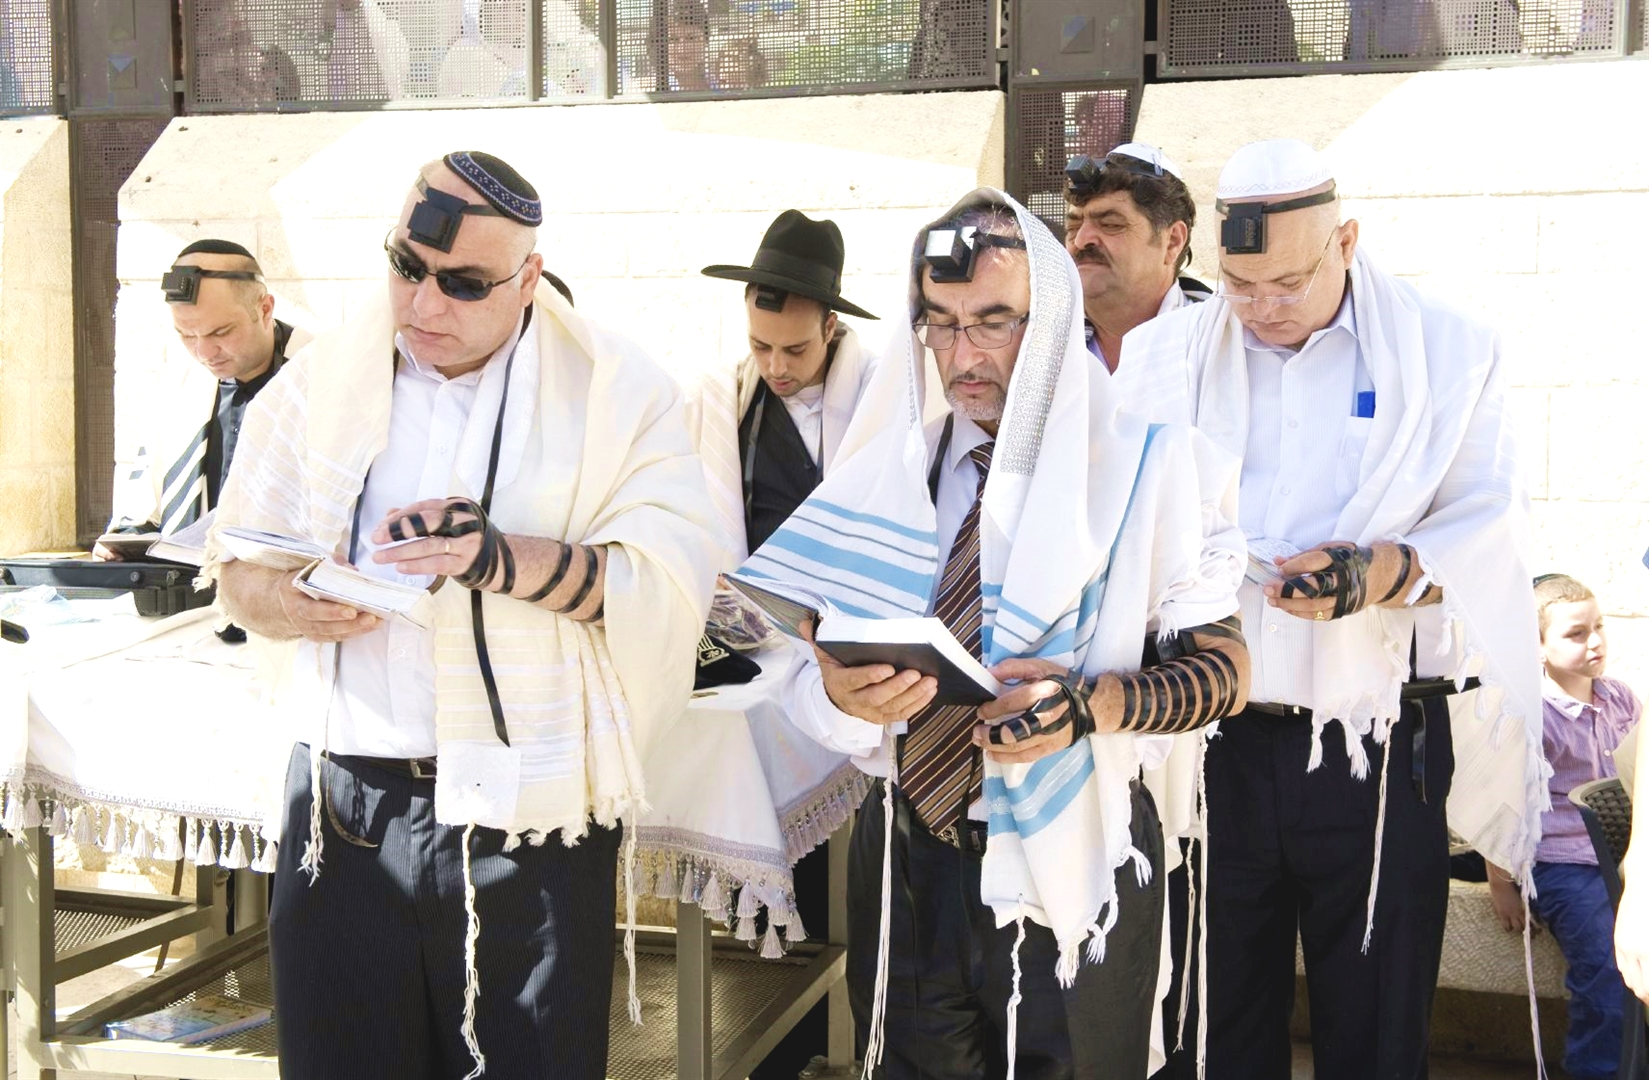 Jewish men wearing tallitot pray at the Western (Wailing) Wall in Jerusalem.